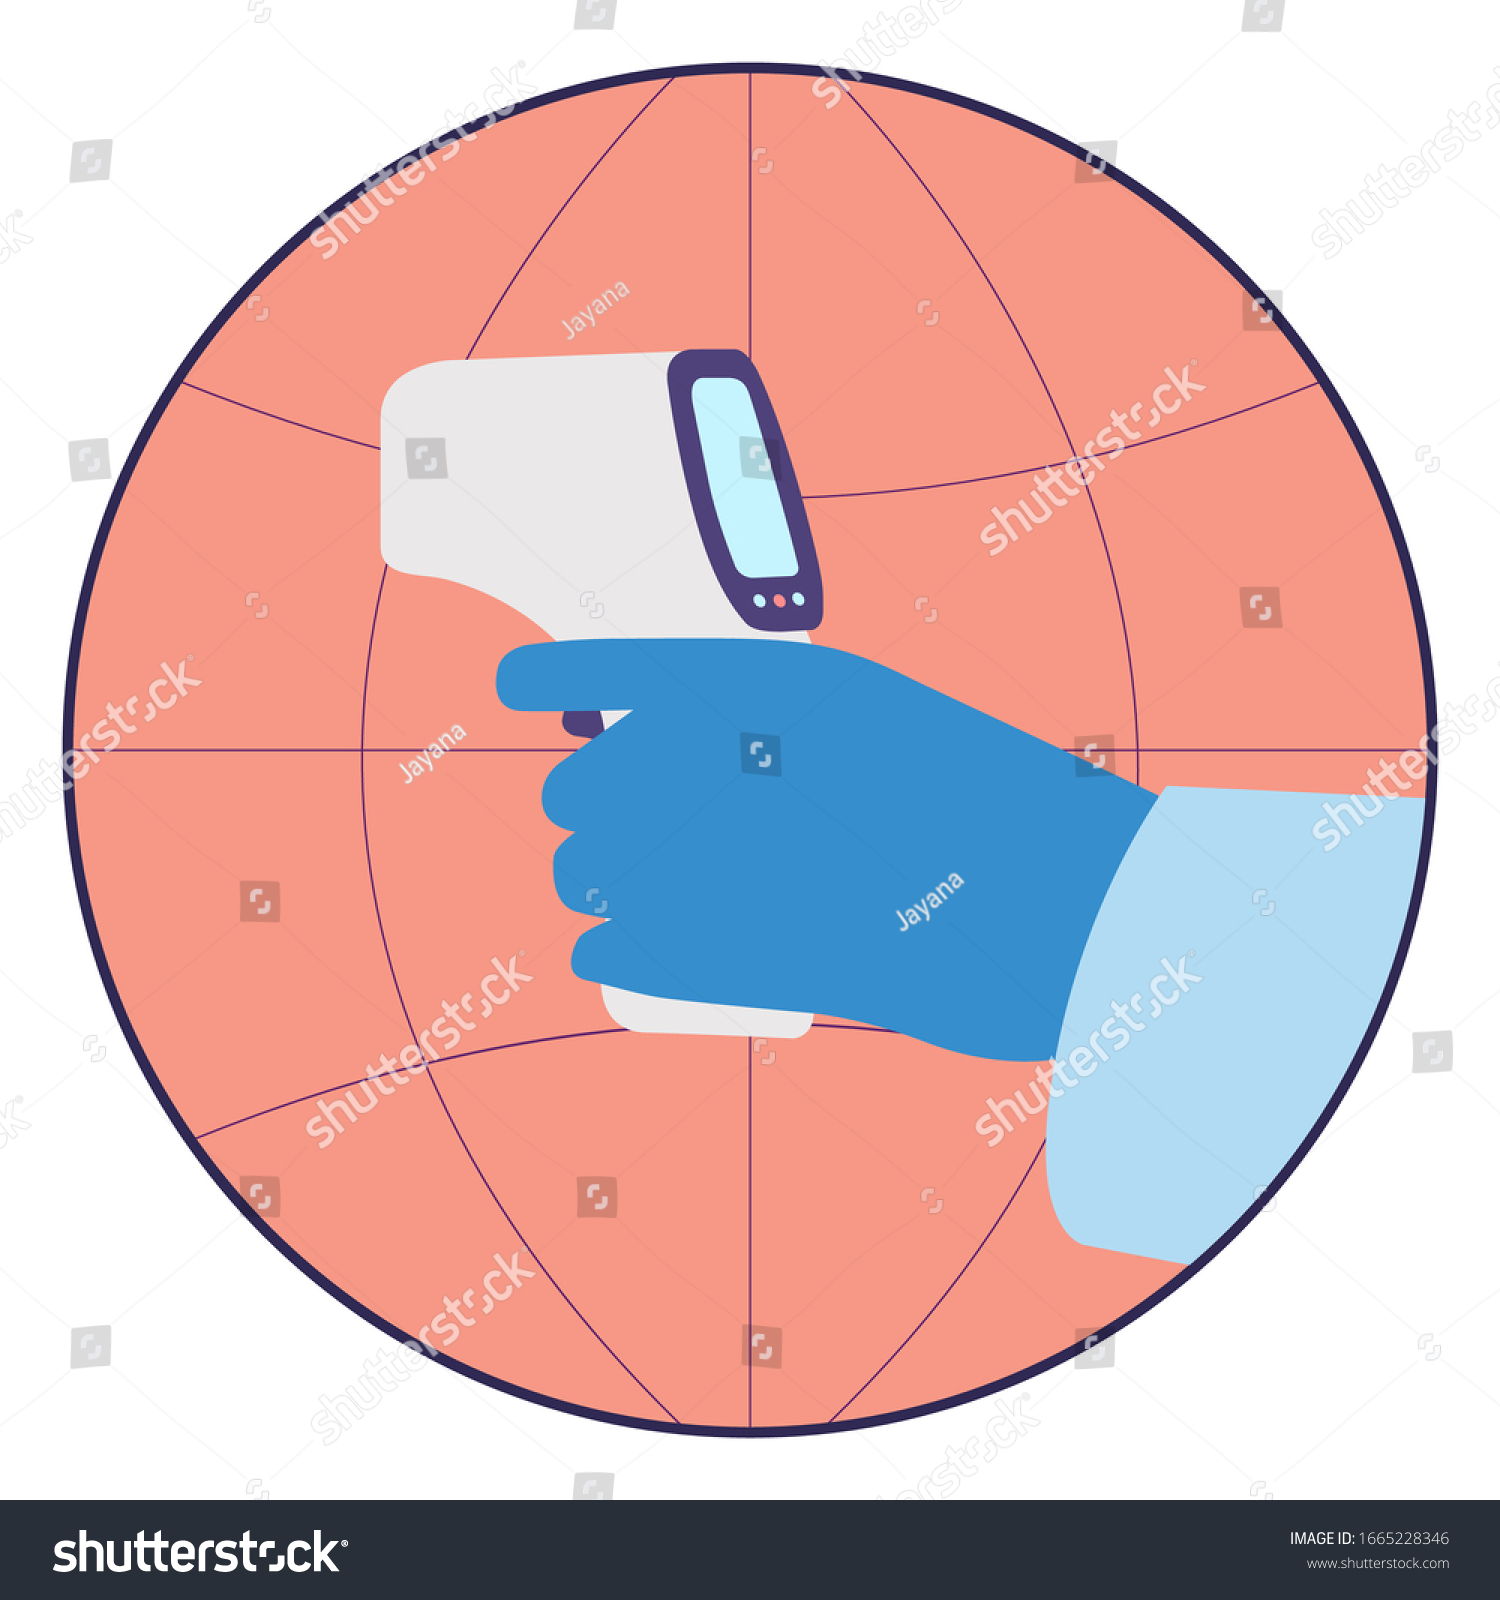 Check Body Temperature Fever Covid19 Checkpoint Stock Vector Royalty Free 1665228346